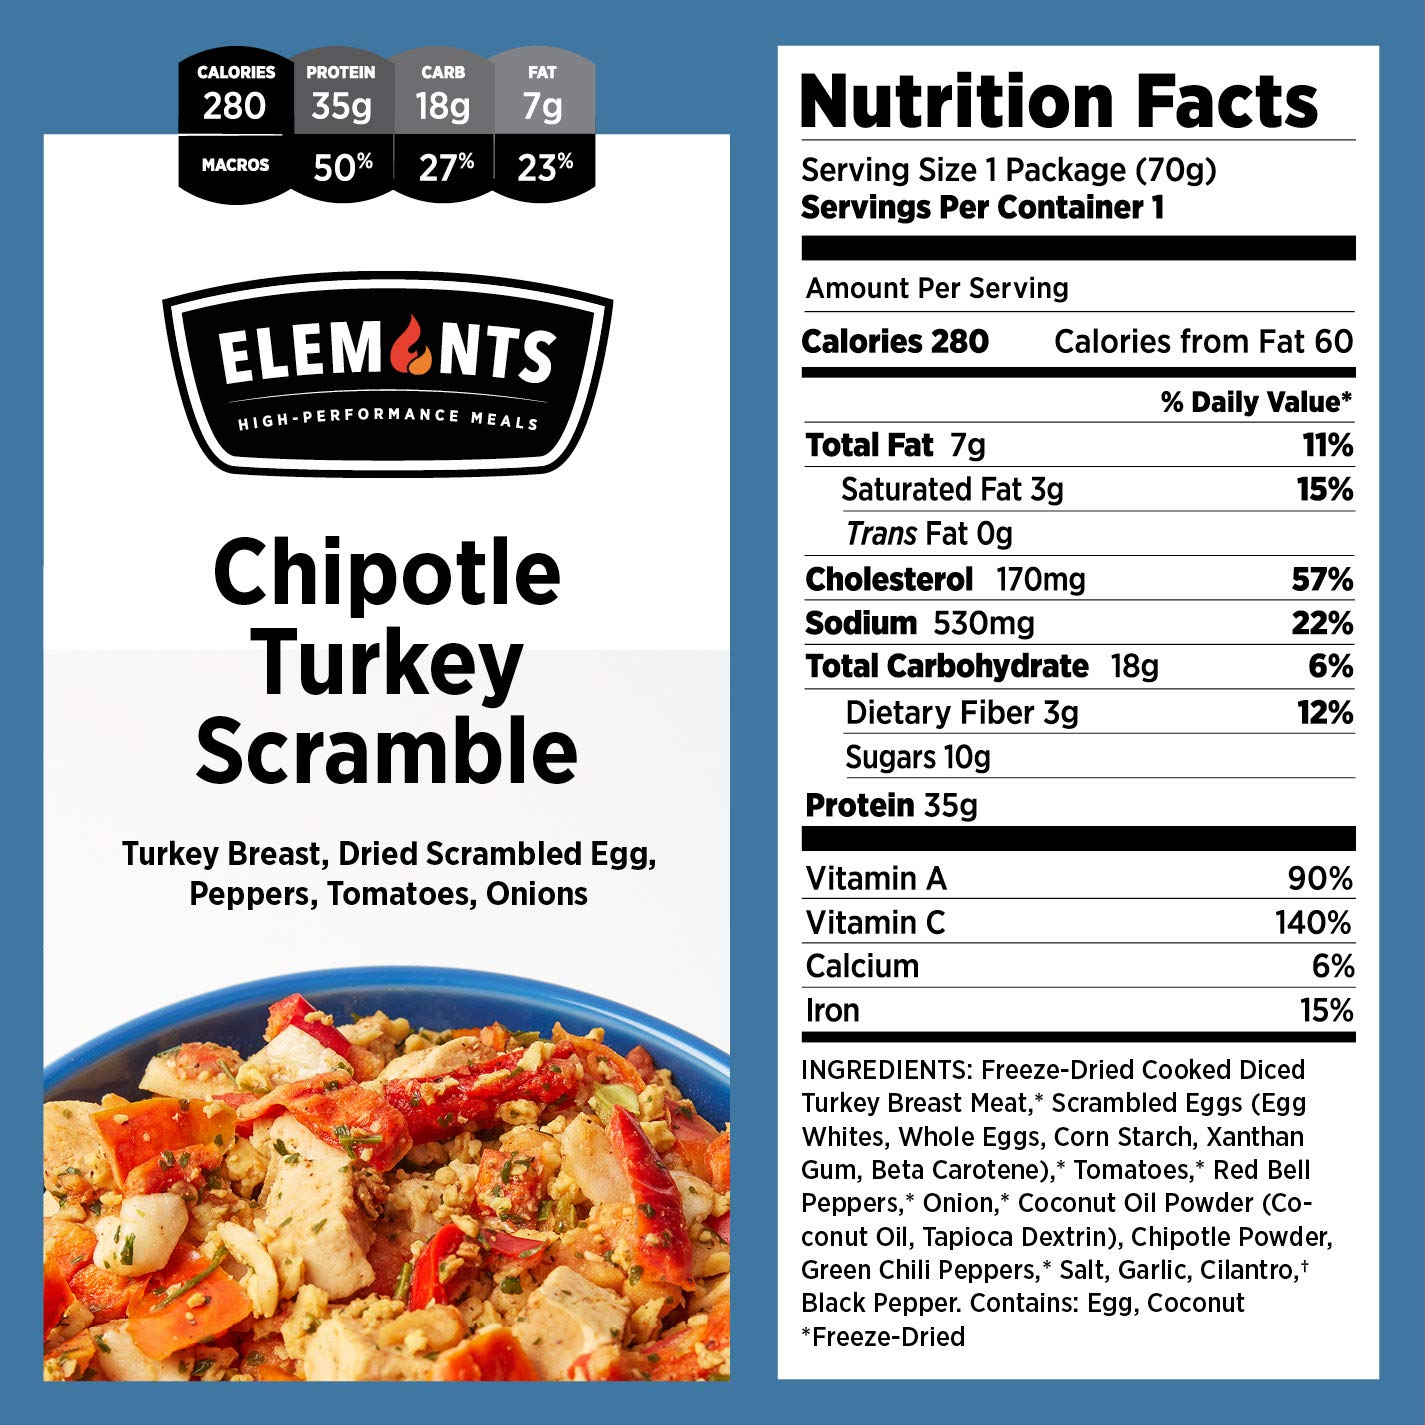 Elements Meals | Chipotle Turkey Scramble | 5-Pack | Healthy Freeze Dried Meals | Paleo-Friendly | Delicious, Backpacking and Camping Food | High Protein by Elements (Image #2)